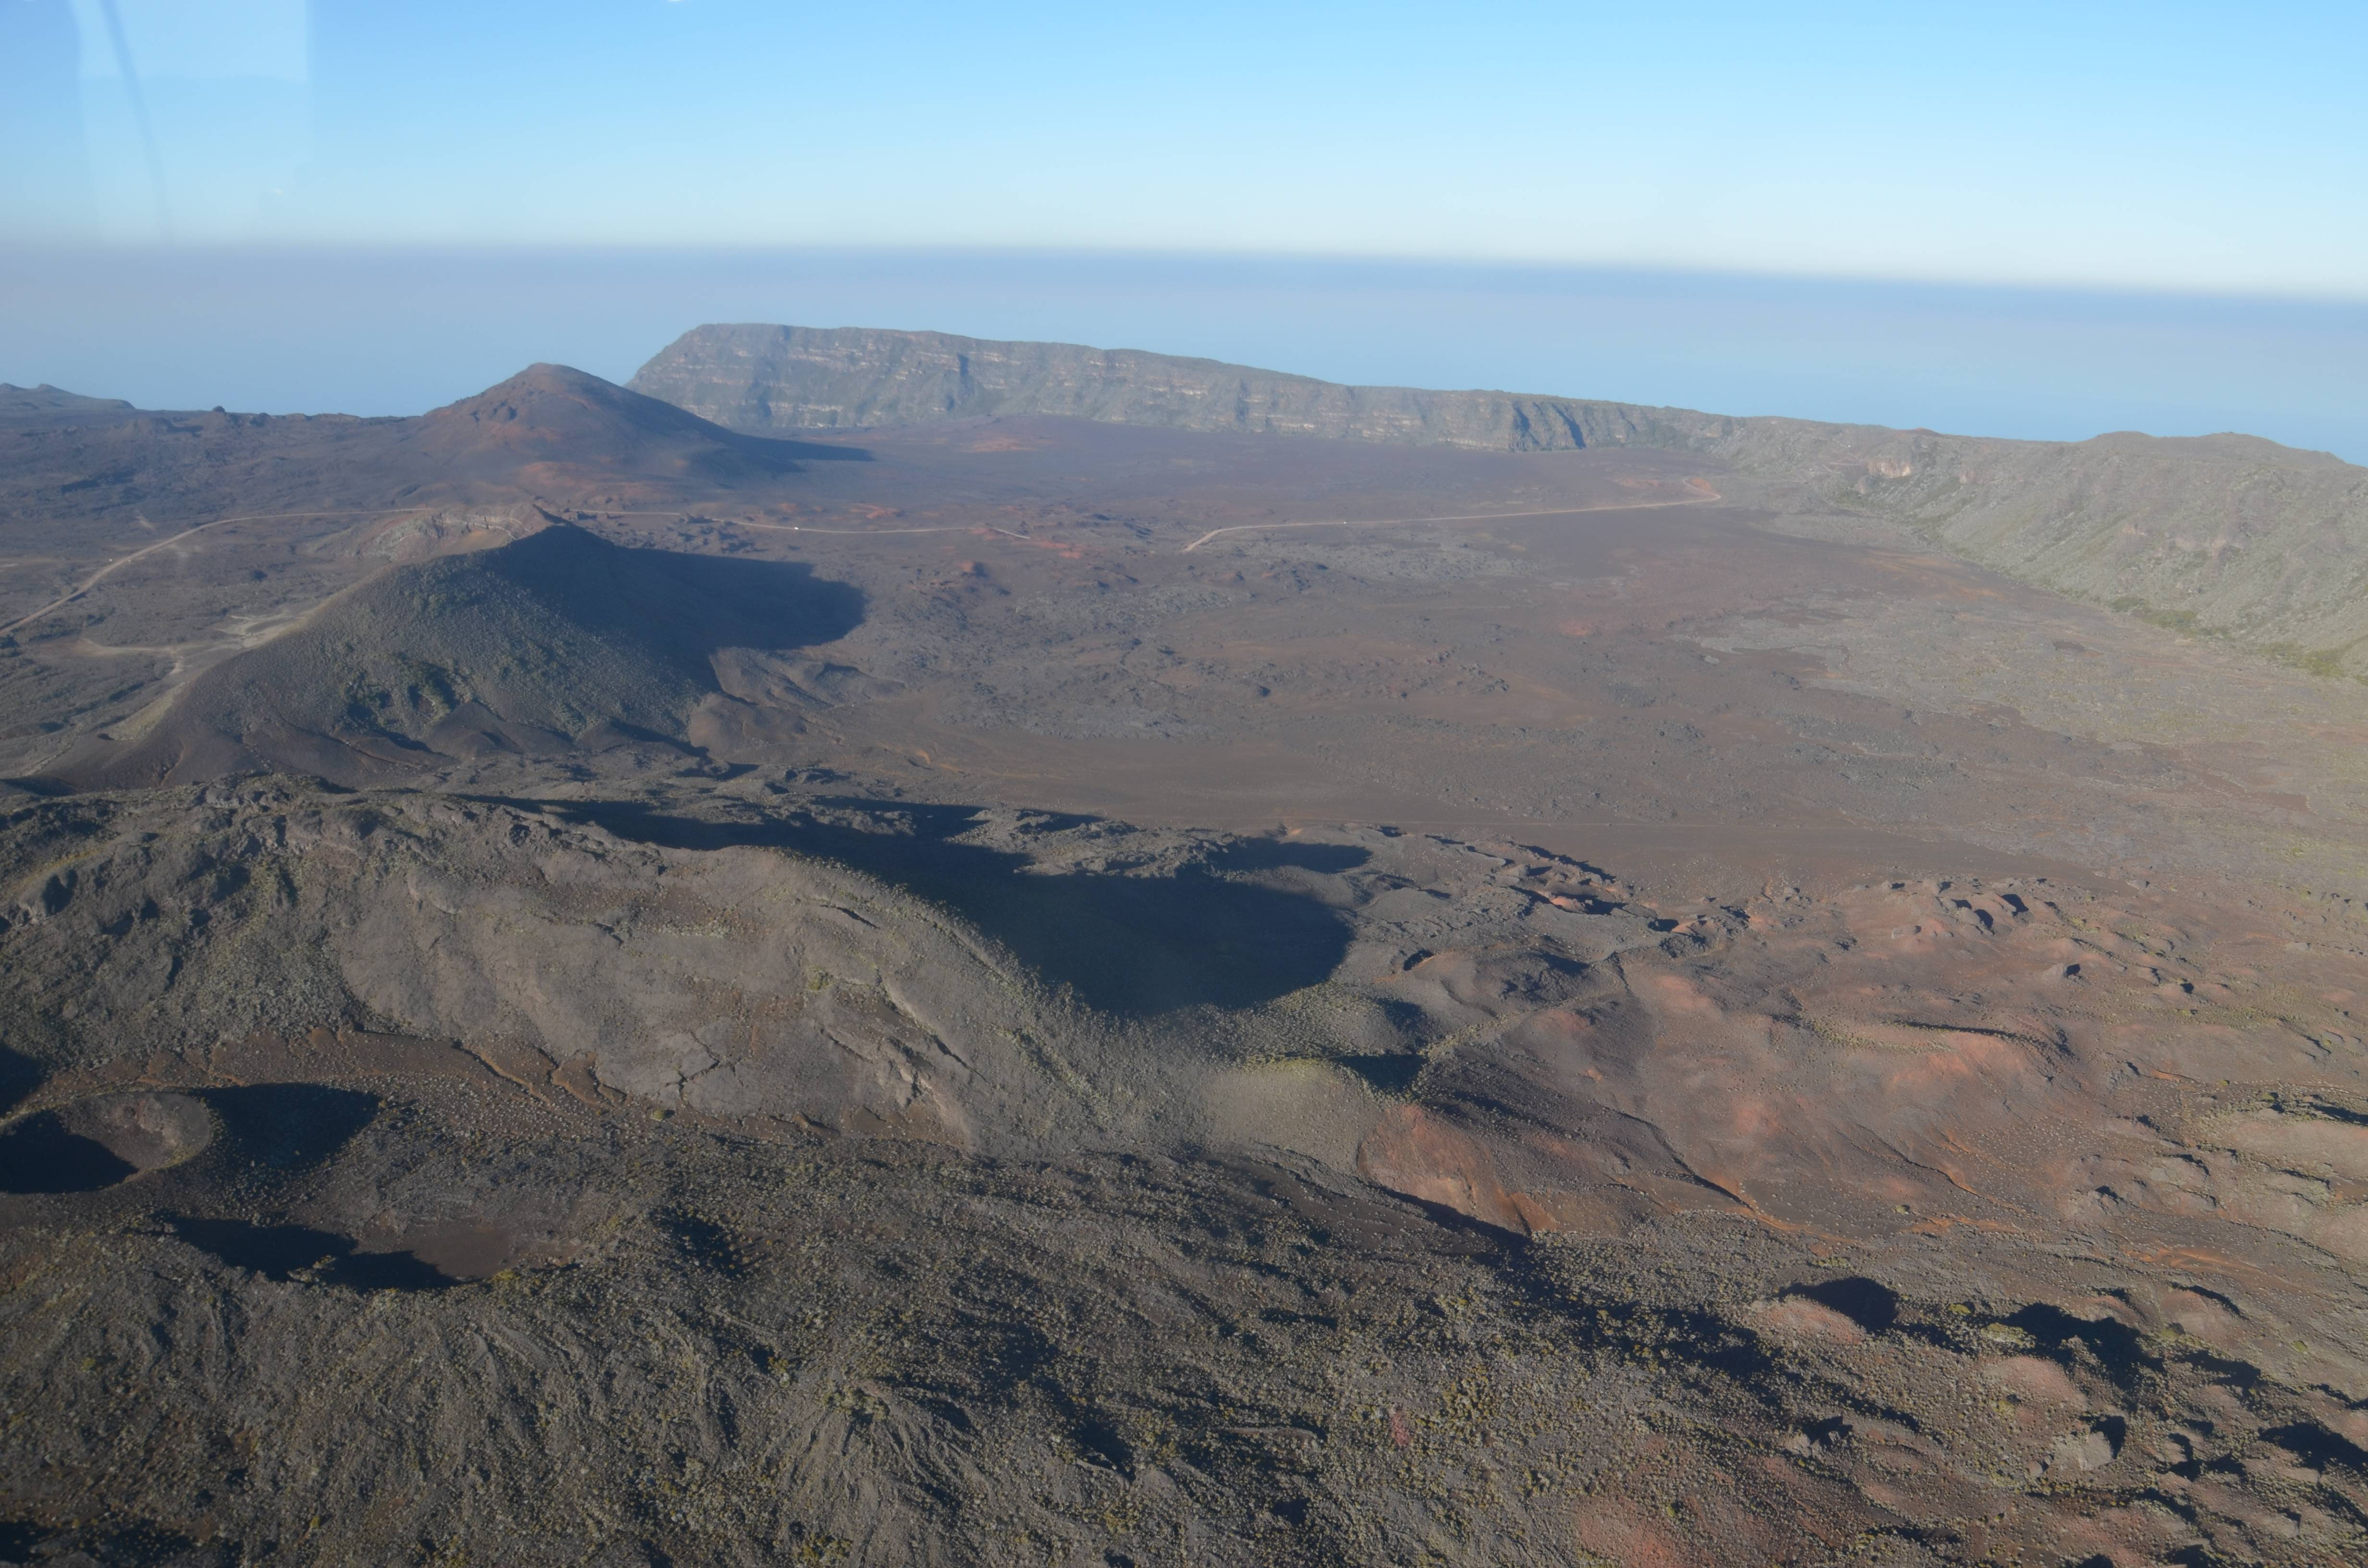 Photo 1: Le Piton de la Fournaise : la star de la Réunion !